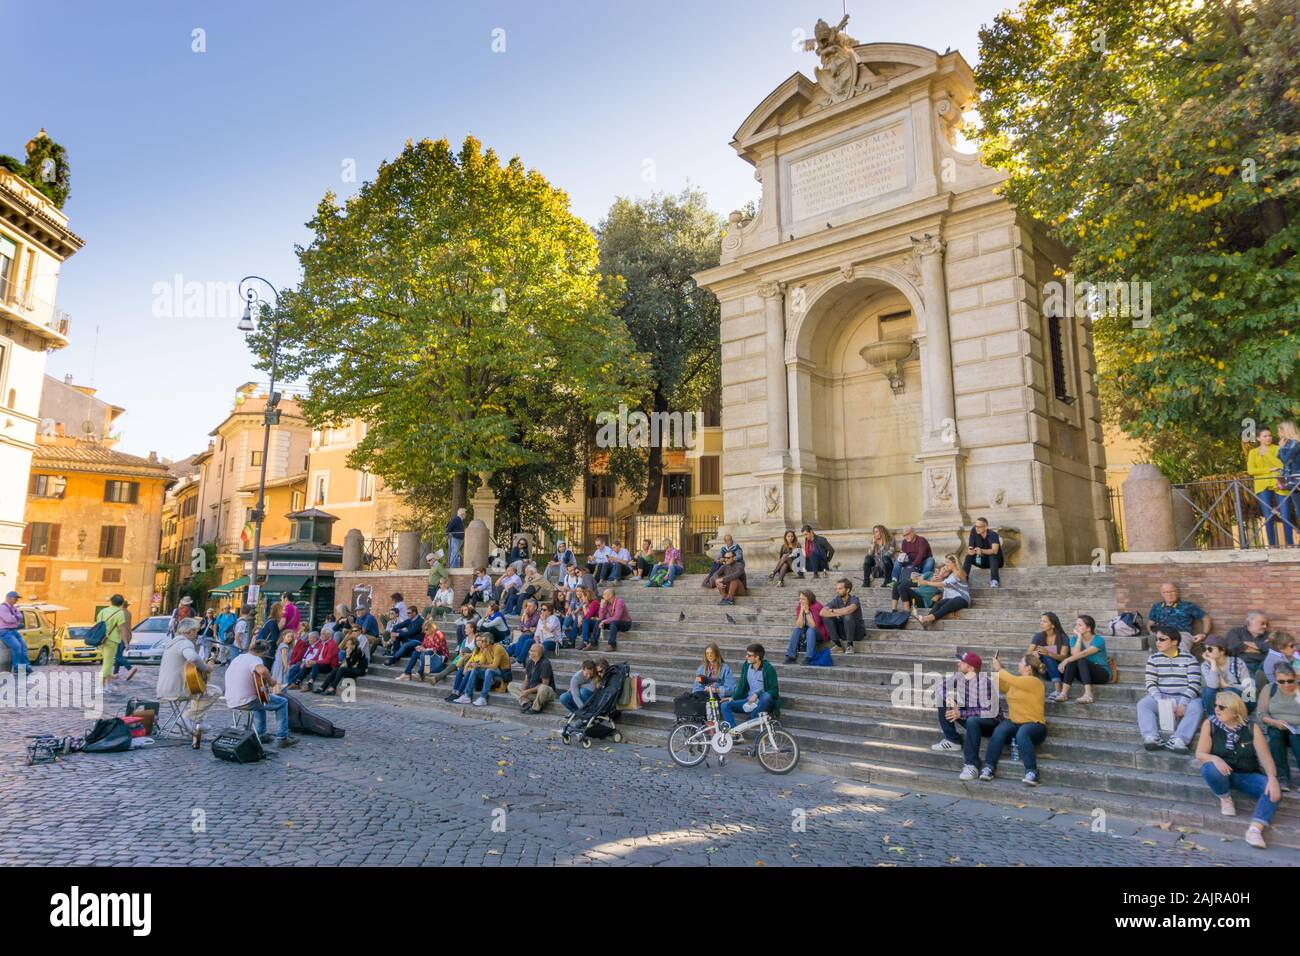 ROME, ITALY - OCTOBER 10, 2017: people are listening to an outdoor concert in Trilussa Square in Trastevere district in Rome, Italy Stock Photo